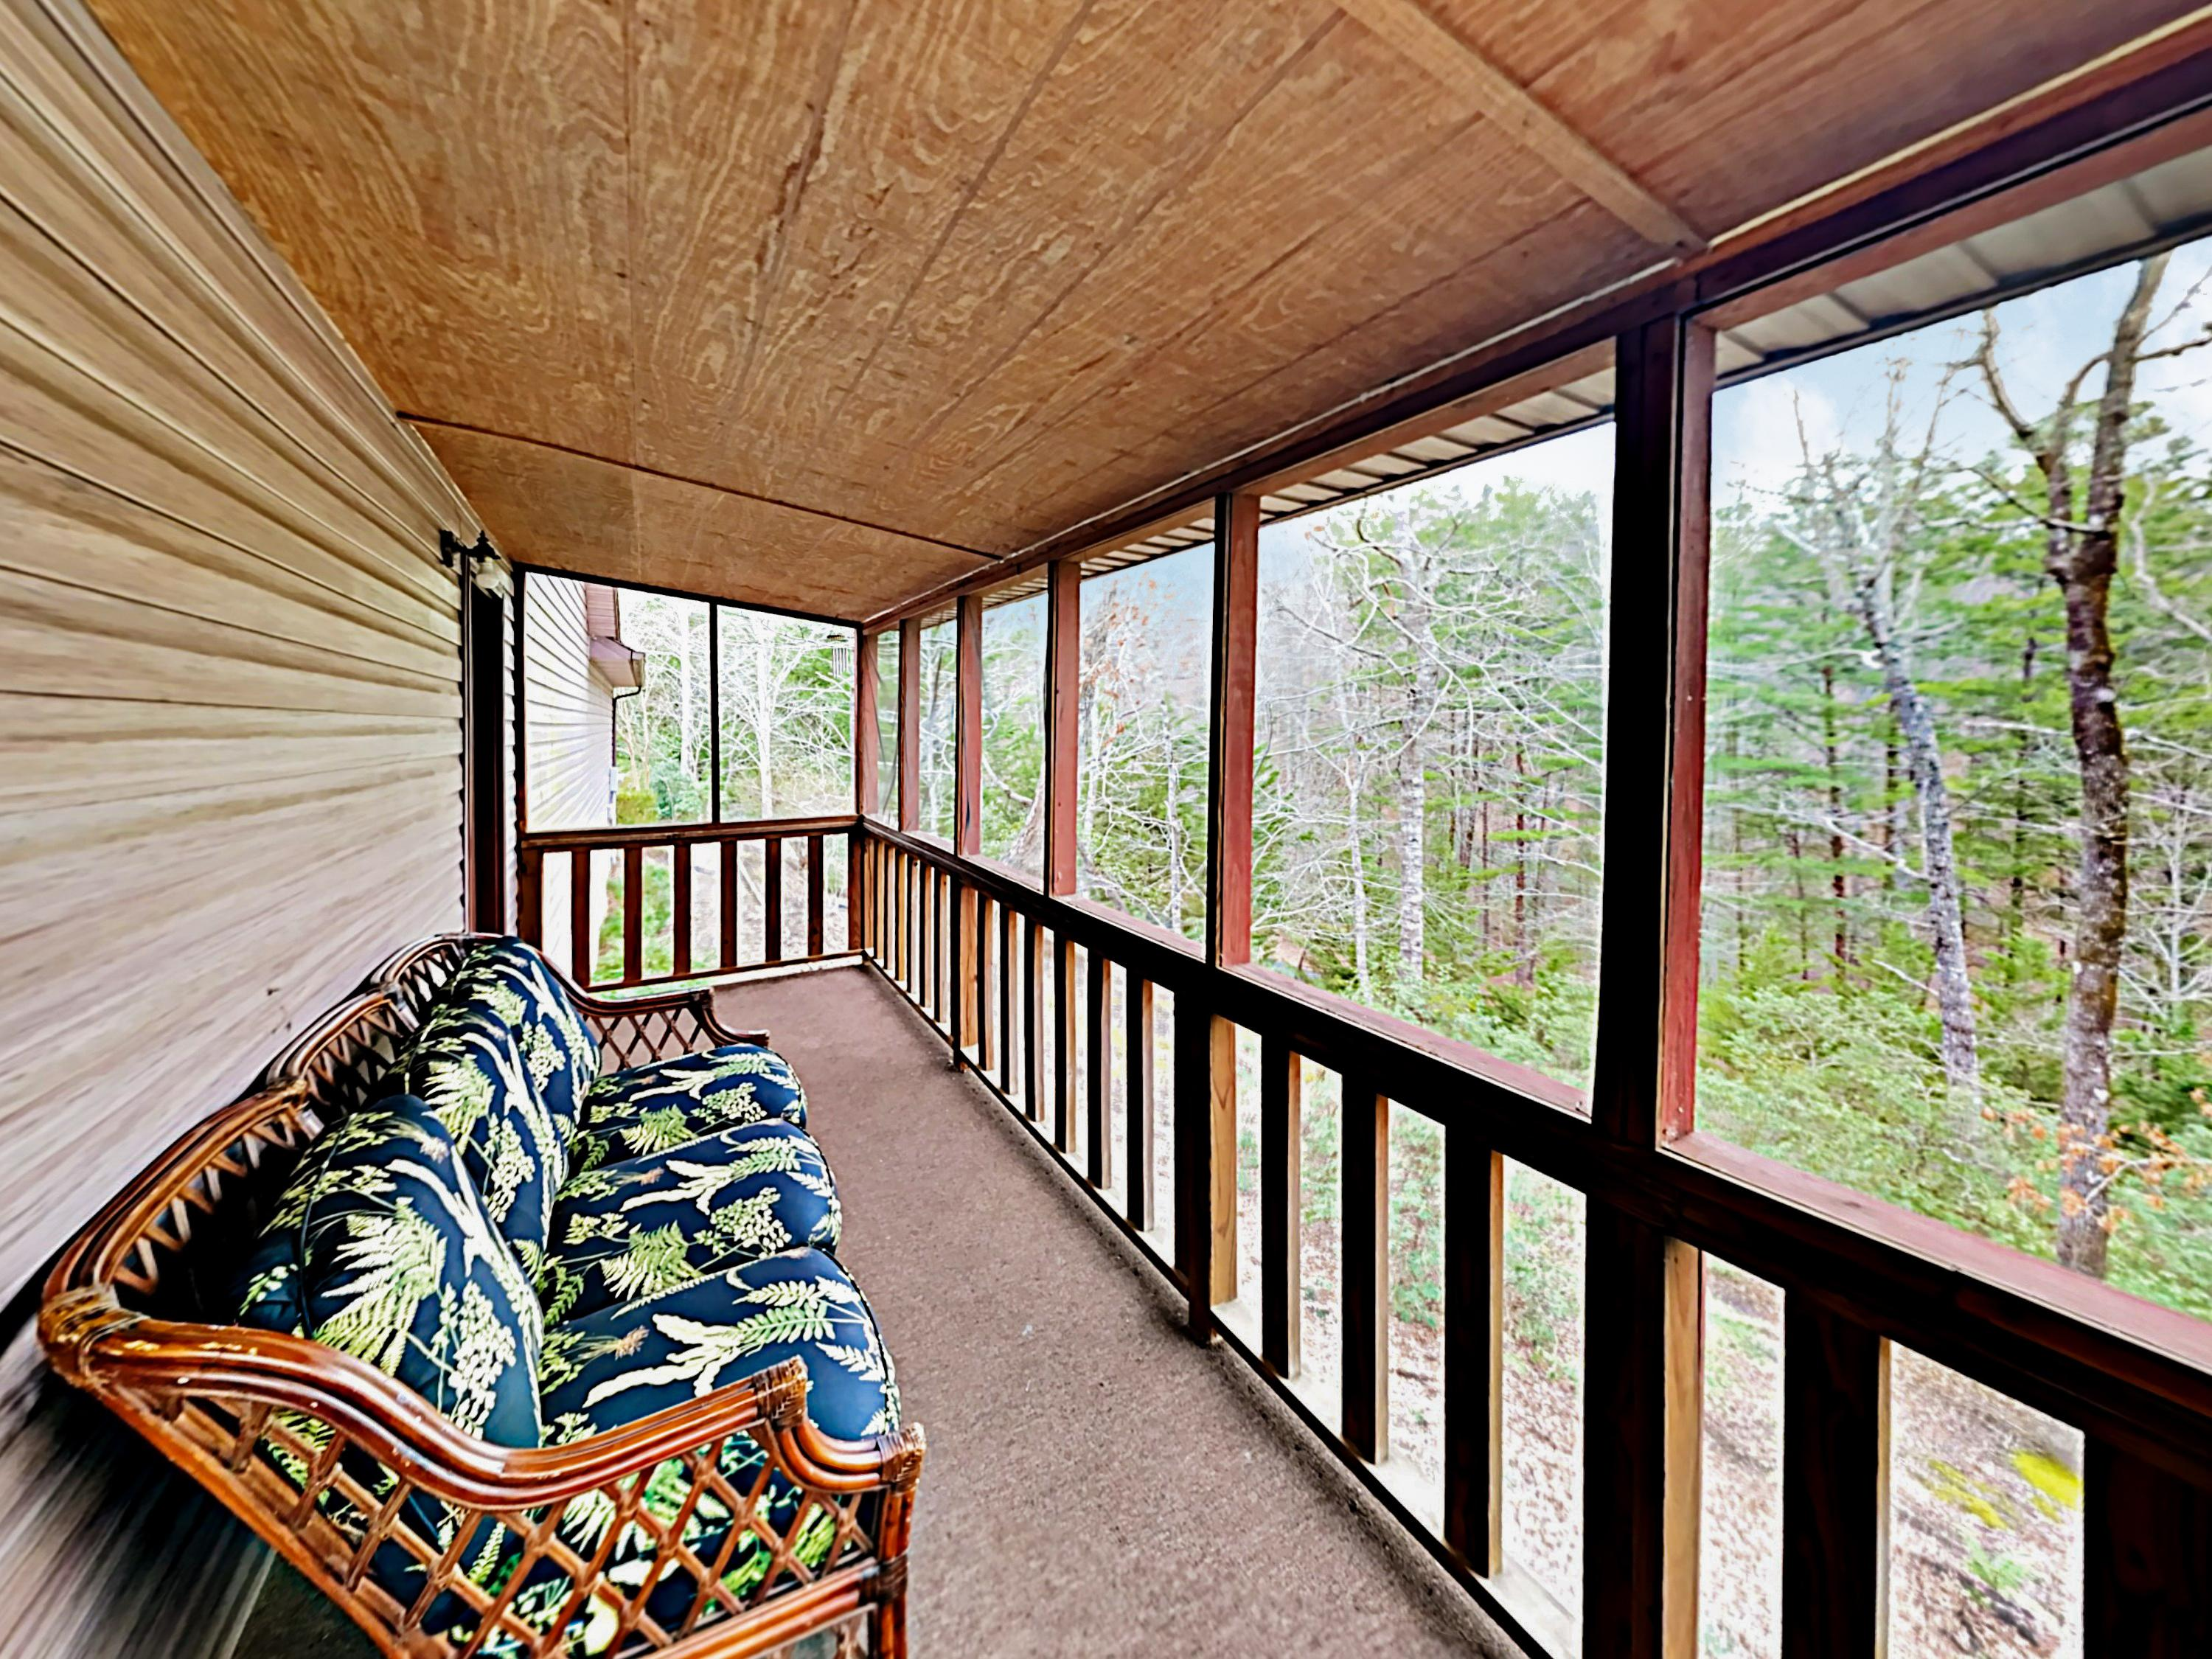 Comfy seating and mountain views await on the wrap-around back deck.